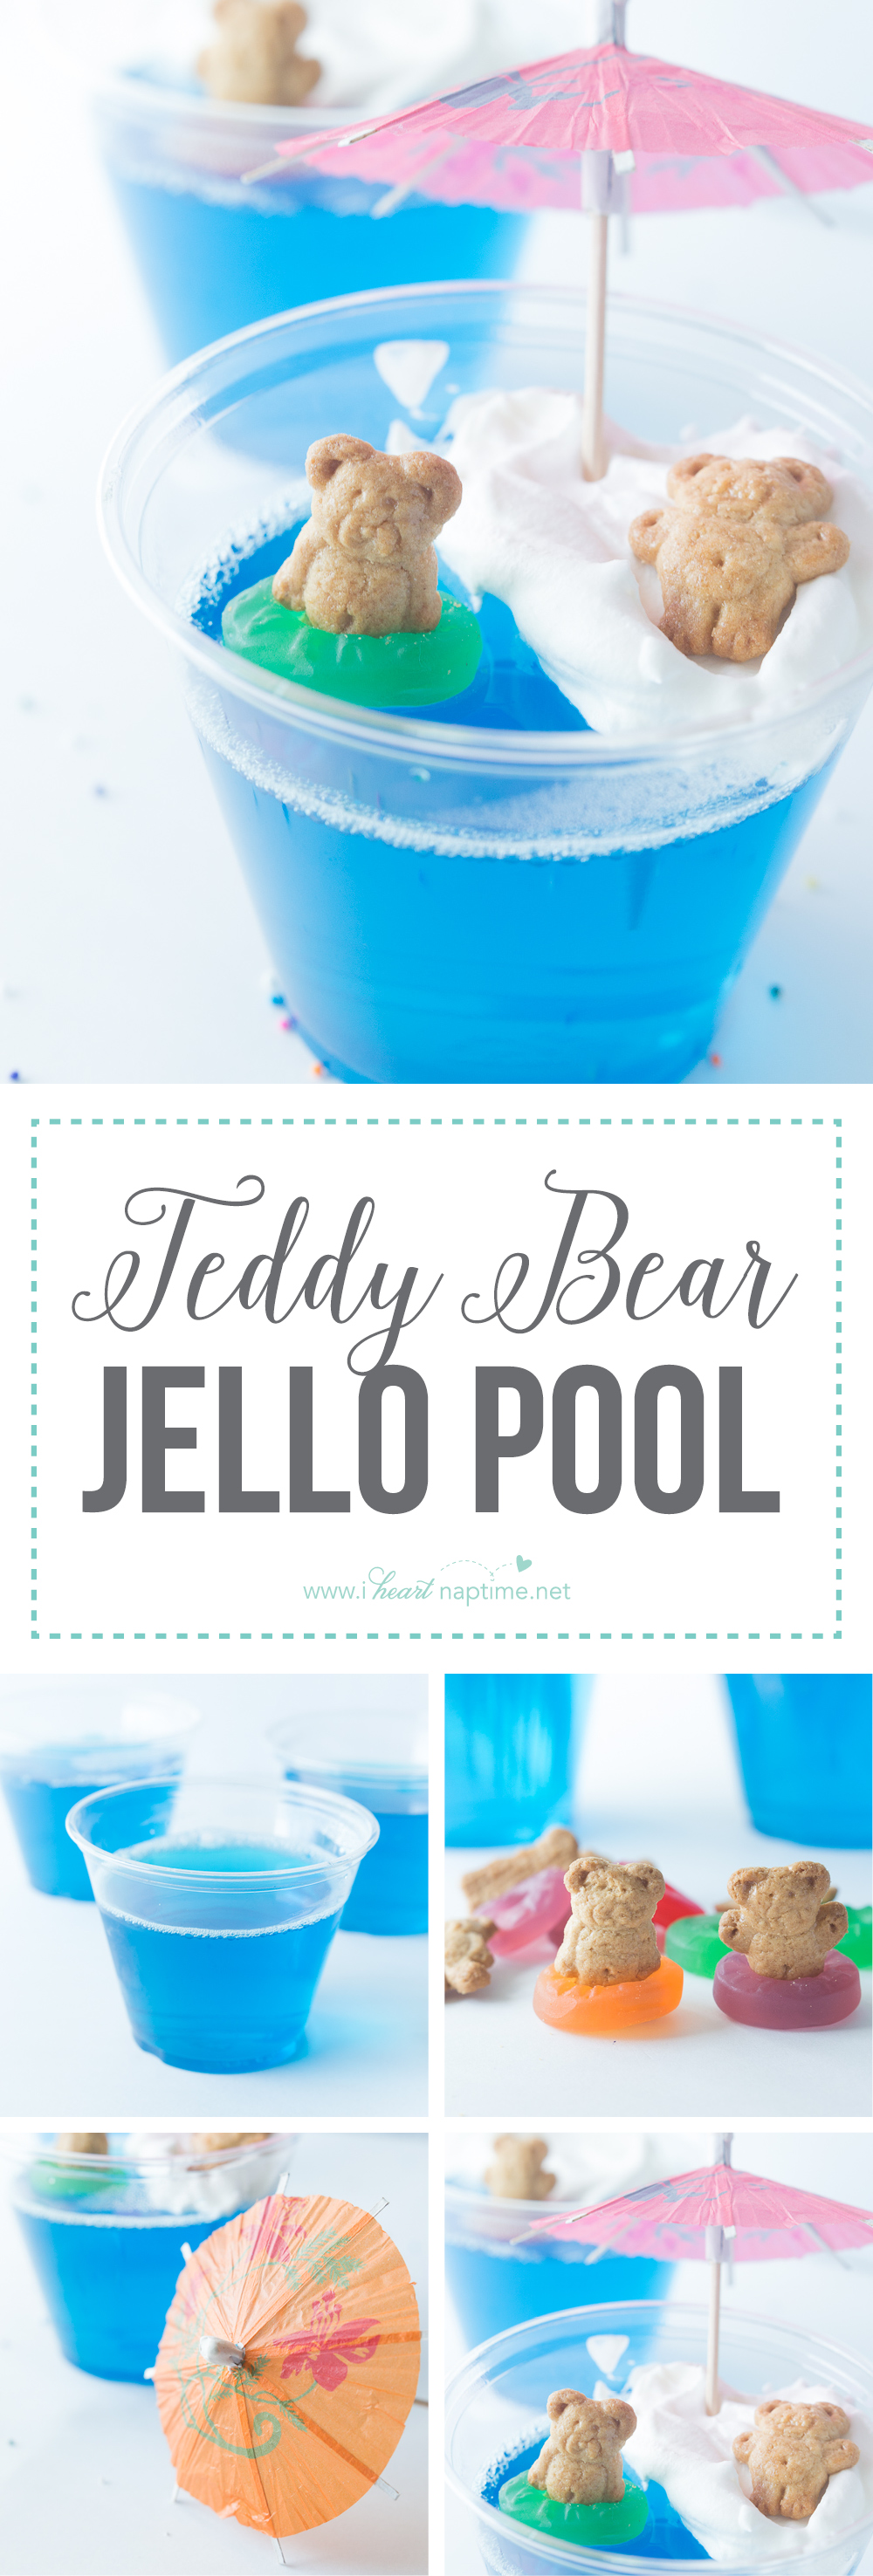 Teddy-Bear-Jello-Pool